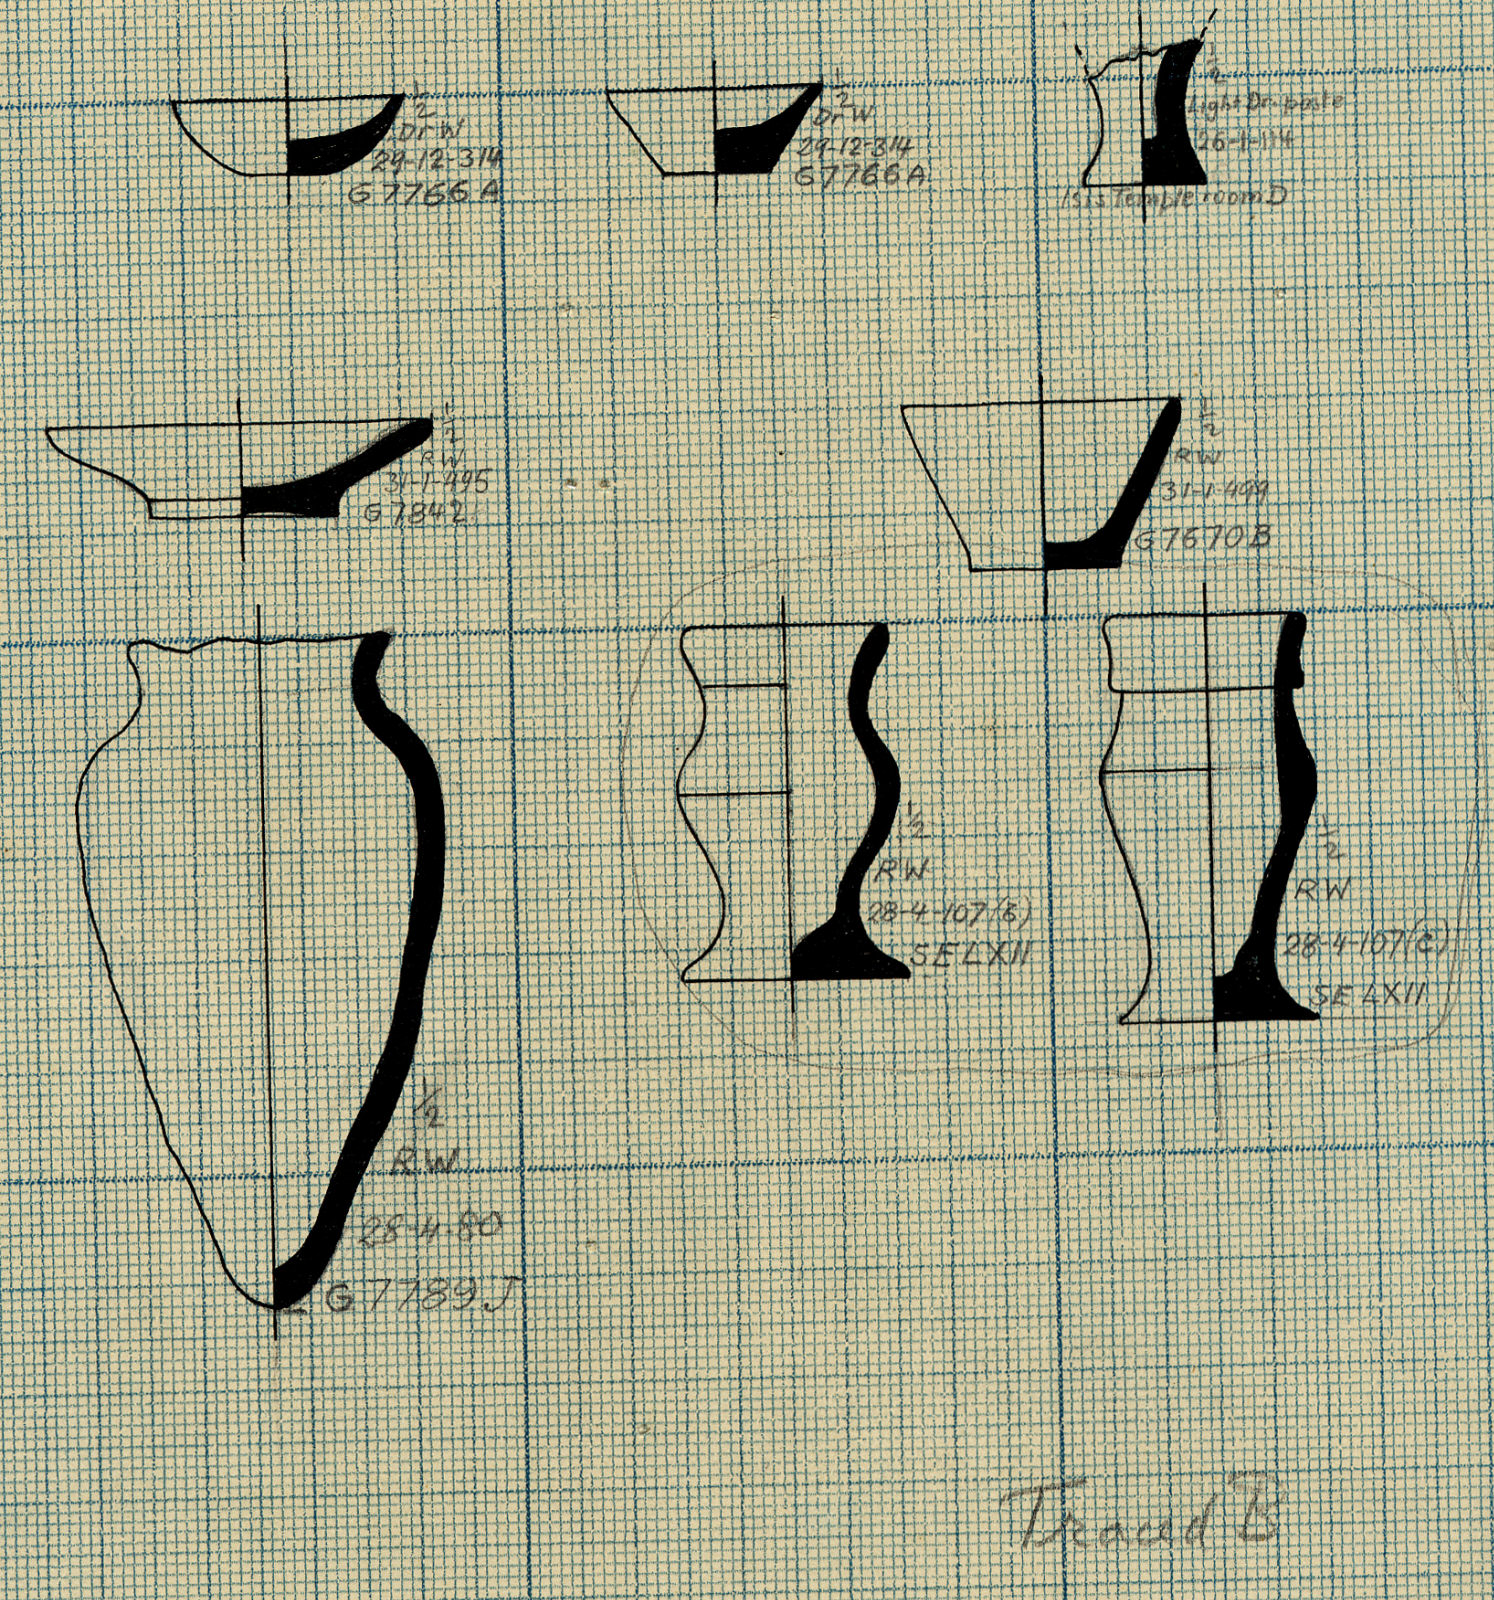 Drawings: Pottery from G 7000 SE 62; G 7670, Shaft B; G 7766, Shaft A;  G 7842; G 7789, Shaft  J; Isis Temple, Room D